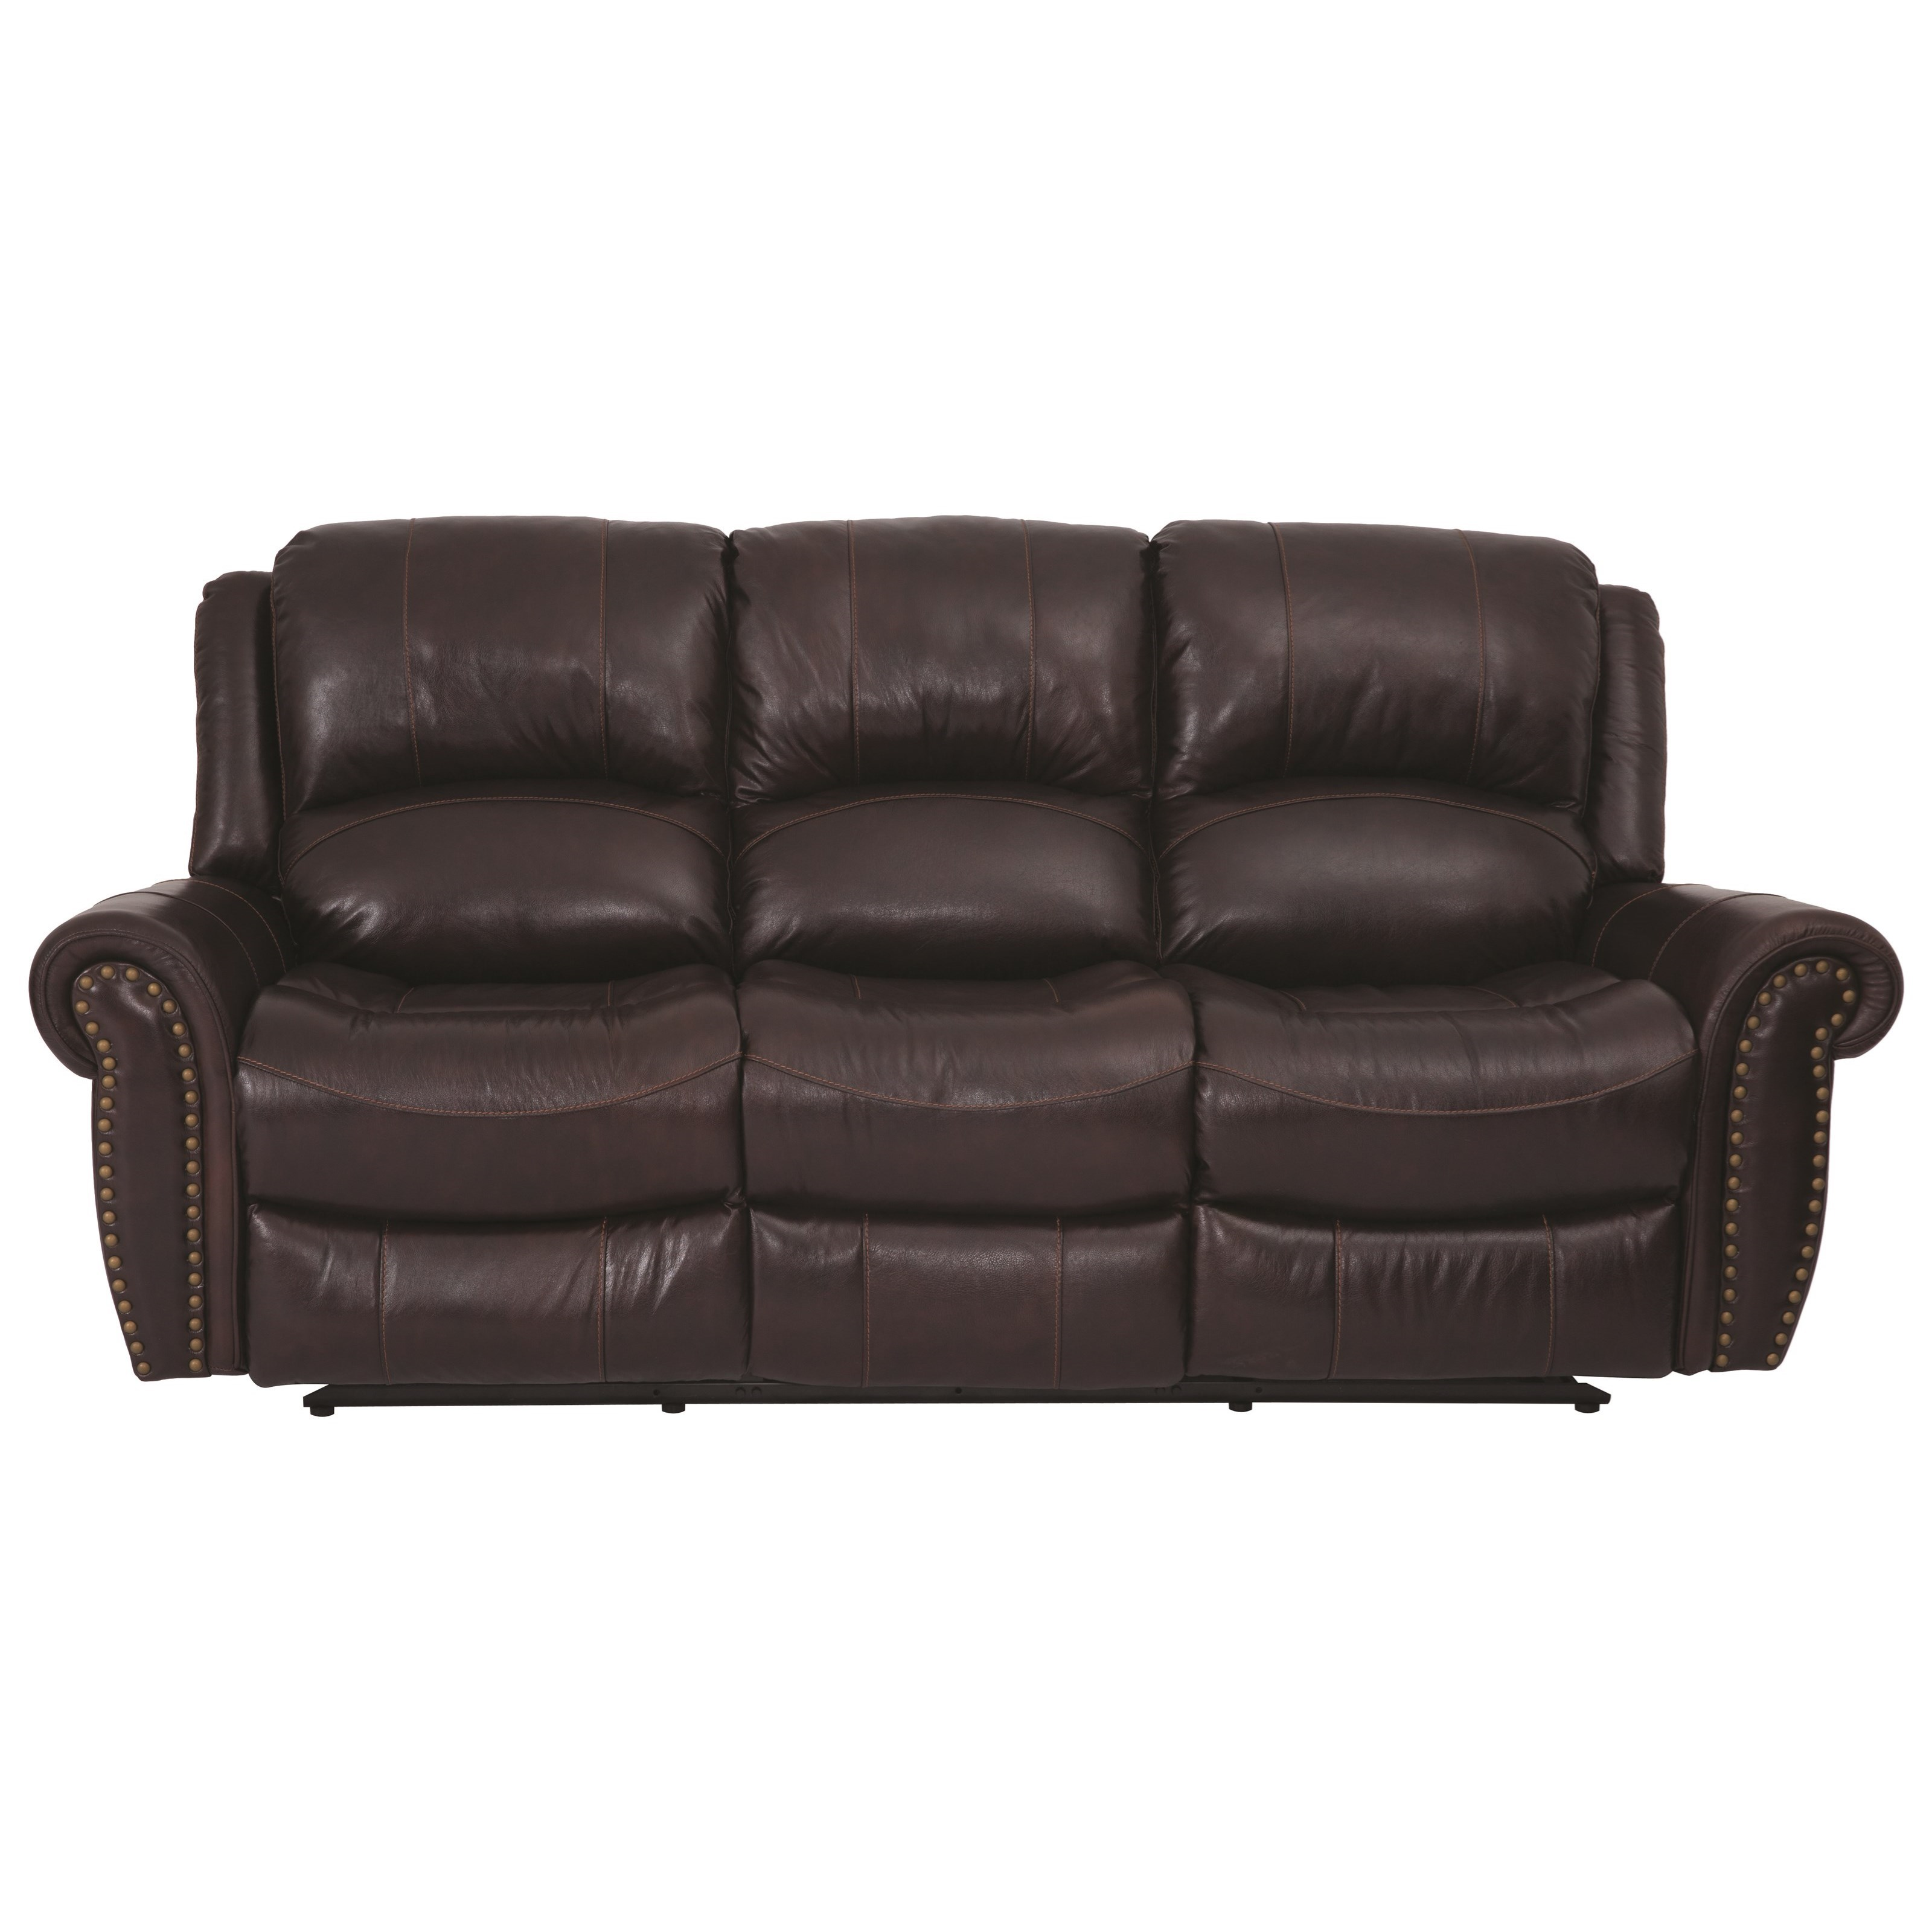 Cheers Sofa UXW9888M Power Reclining Sofa - Item Number UXW9888M L3-2E-2543  sc 1 st  Darvin Furniture & Cheers Sofa UXW9888M Power Reclining Sofa with Nailhead - Darvin ... islam-shia.org